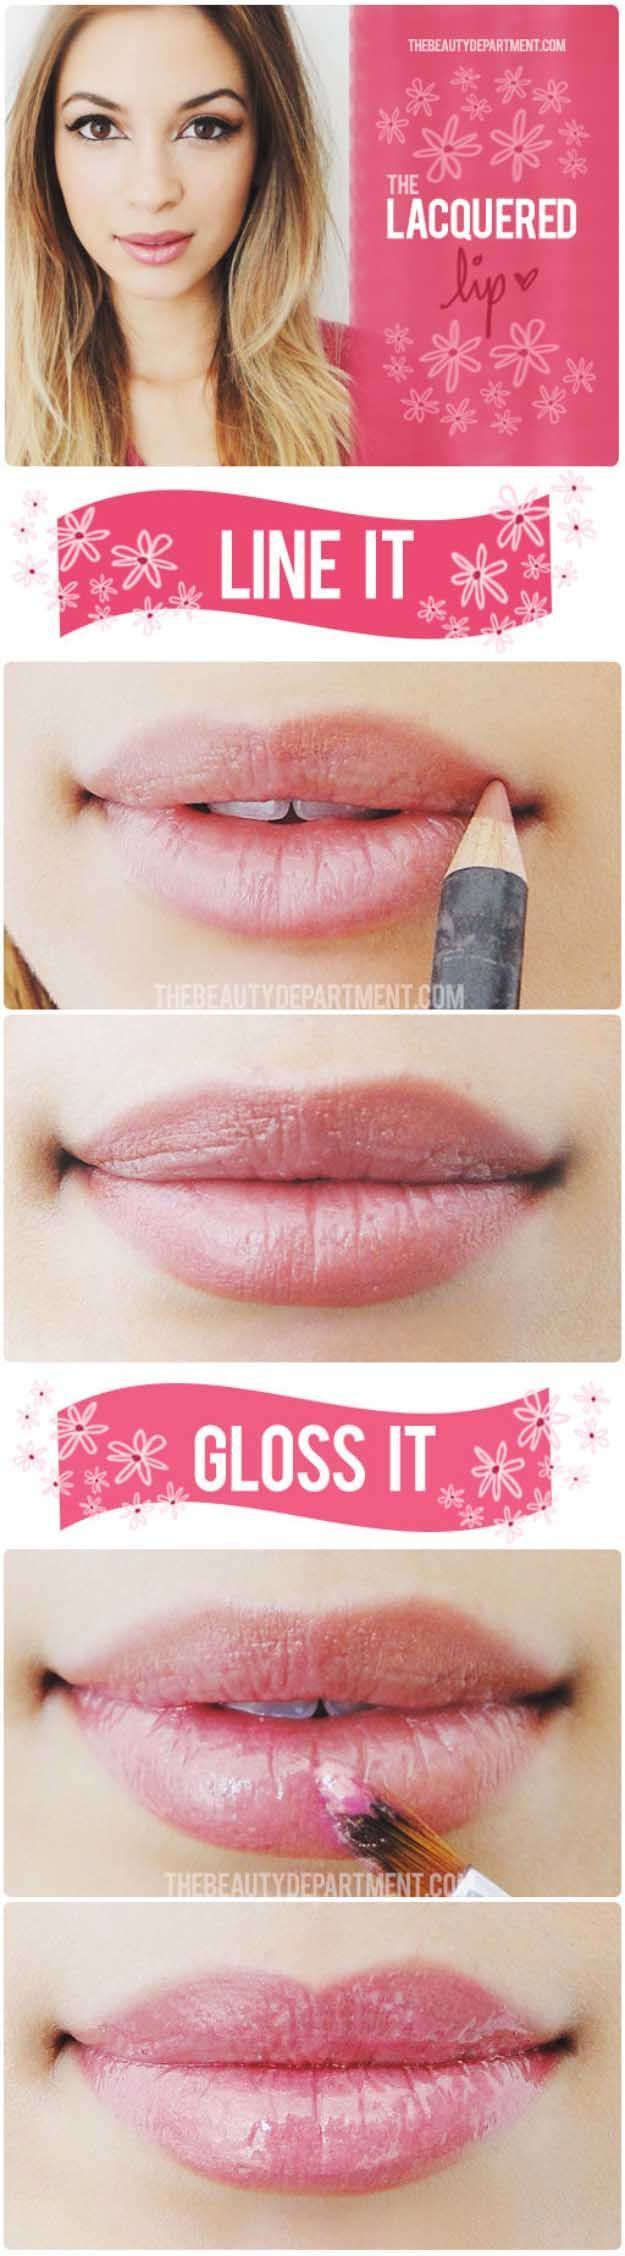 Tips for Lining Your Lips Like a Pro - The Lacquered Lip - Easy Tutorials and Awesome Hacks For Lip Liners - Kylie Jenner Tutorials and Black Women Tips - Thin Contouring Tutorials and Hacks for Eye Brows - Natural Shape Eyes - Simple Tricks for How to Apply Pencil Liners and Eyeshadows - thegoddess.com/tips-lining-your-lips